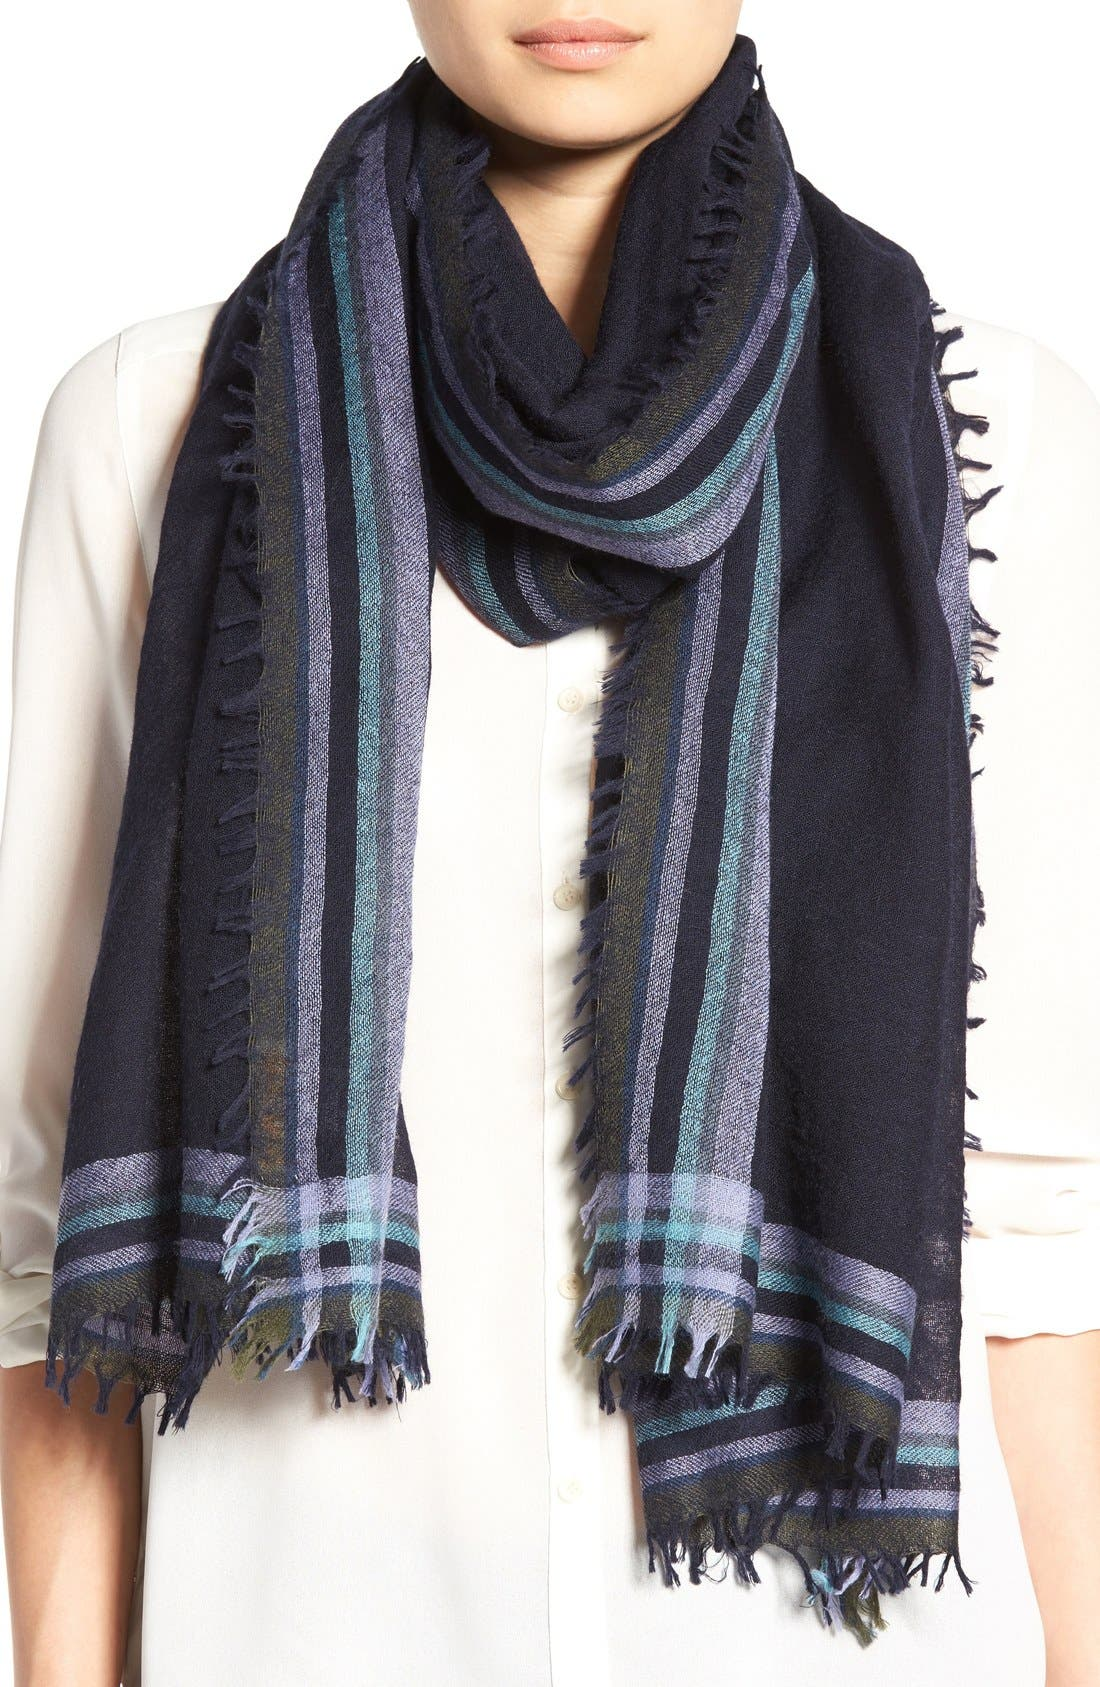 Tory Burch 'Signature' Wool Scarf